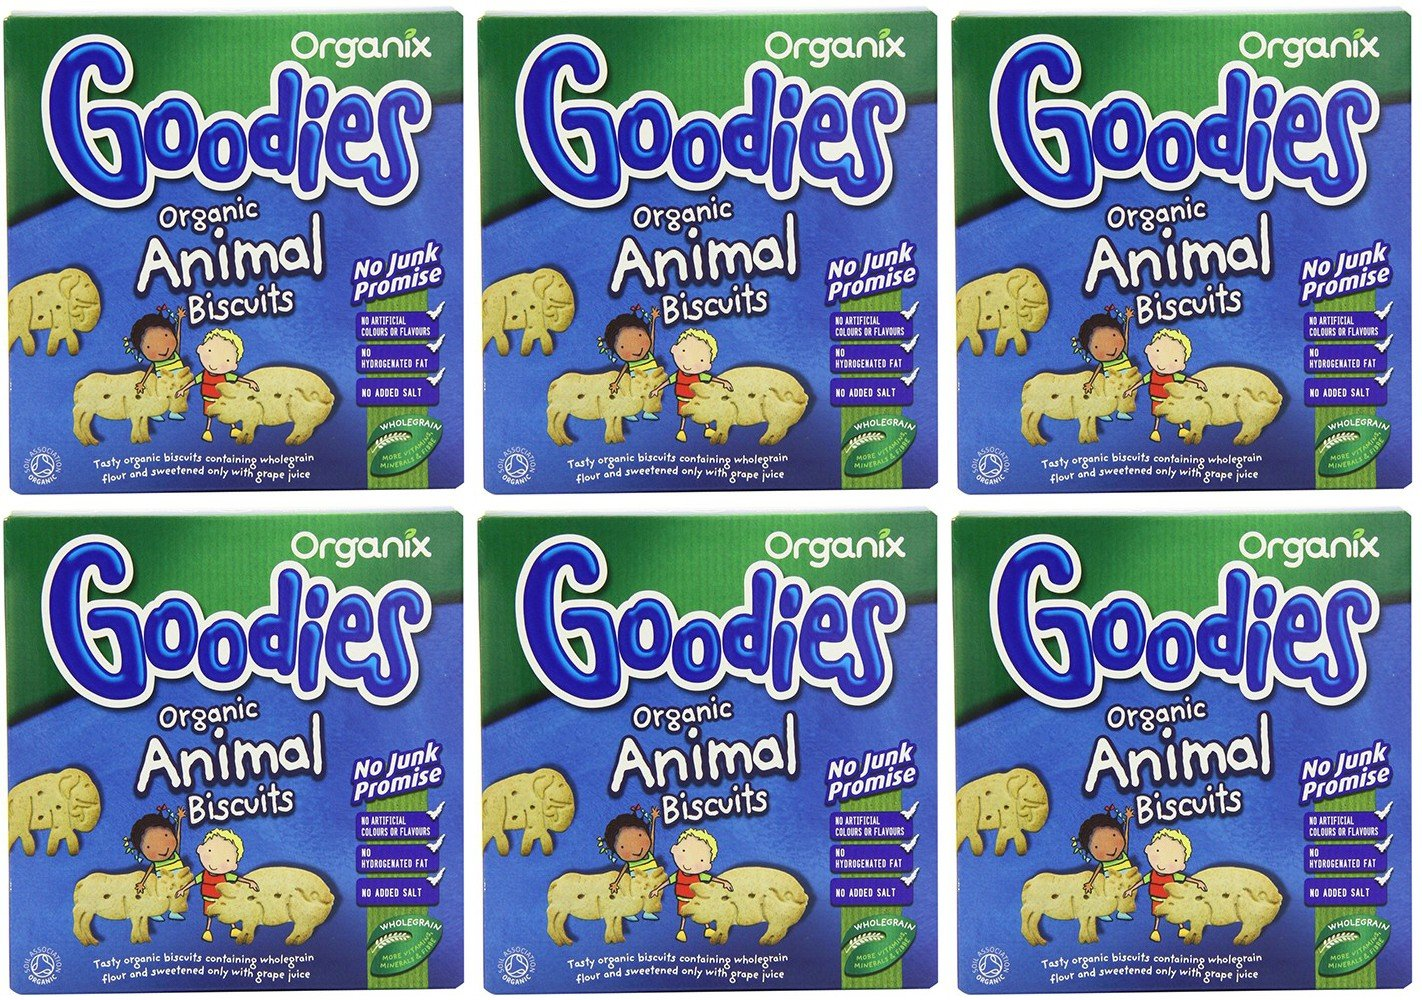 (6 PACK) - Organix - Goodies Animal Biscuits | 100g | 6 PACK BUNDLE